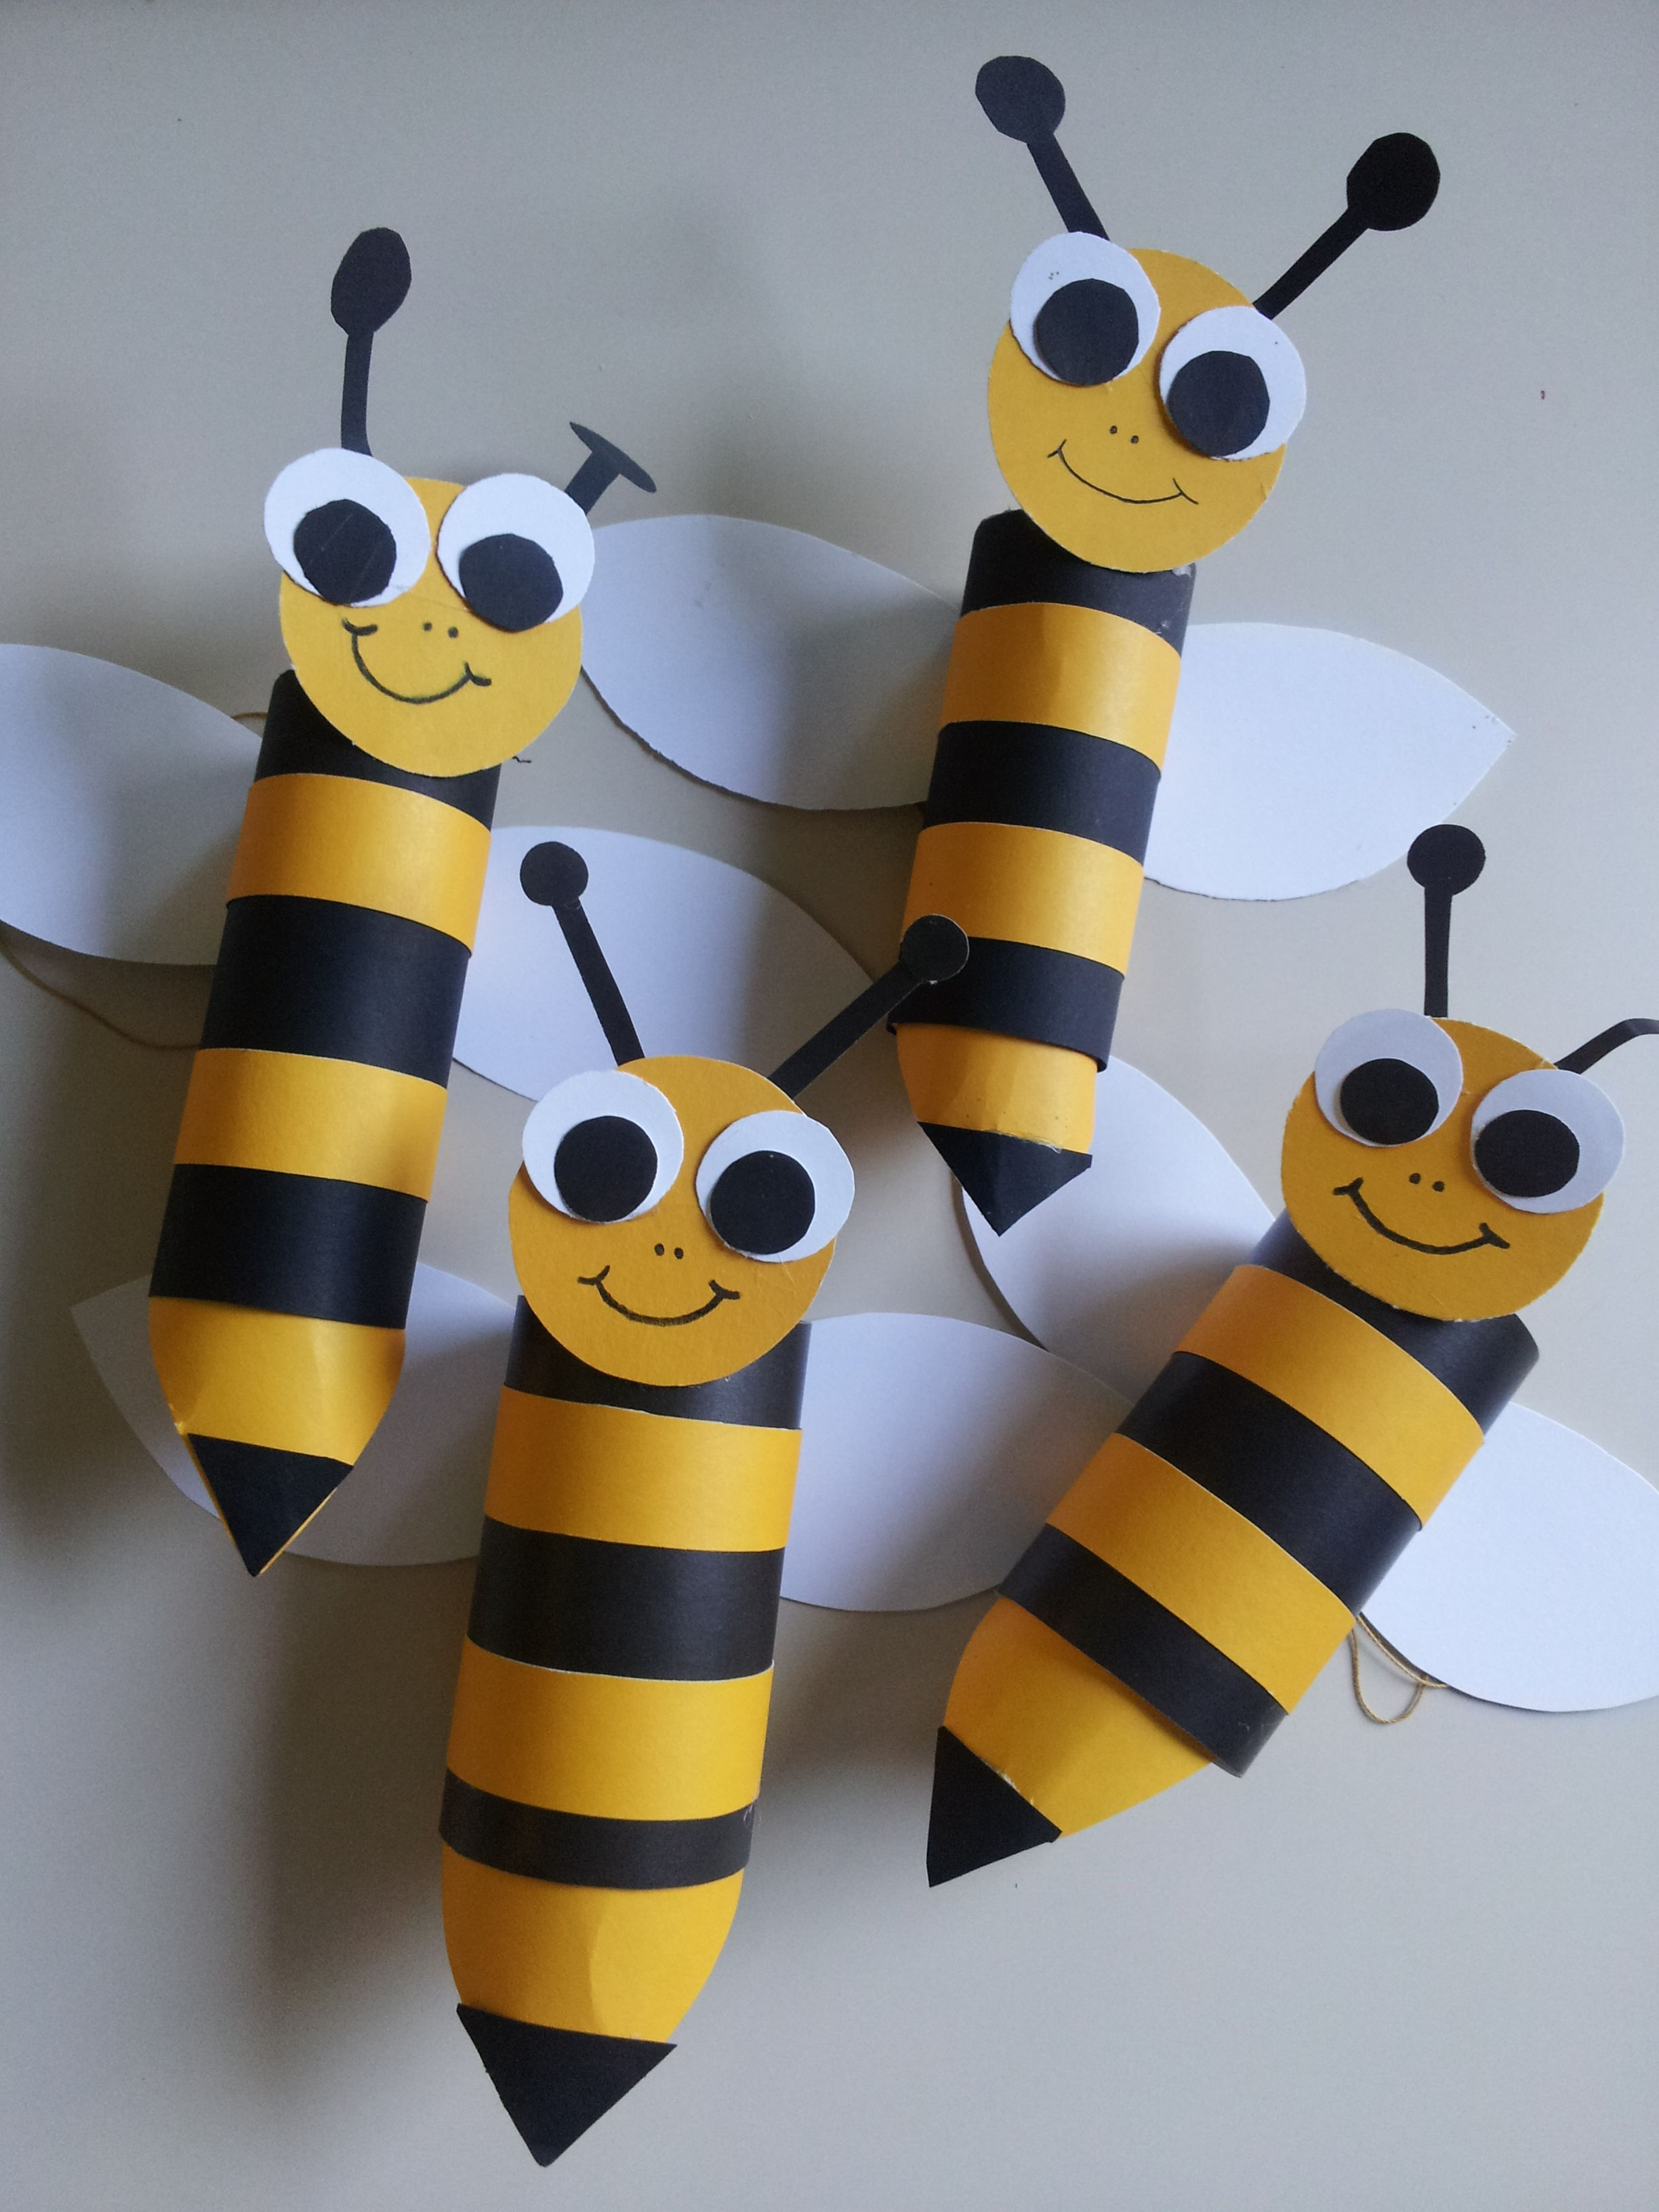 Ms de 20 manualidades con rollos de papel higinico animales toilet paper roll bees sorry no link but i think you can figure out how to make these cute bees manualidades con papel jeuxipadfo Image collections